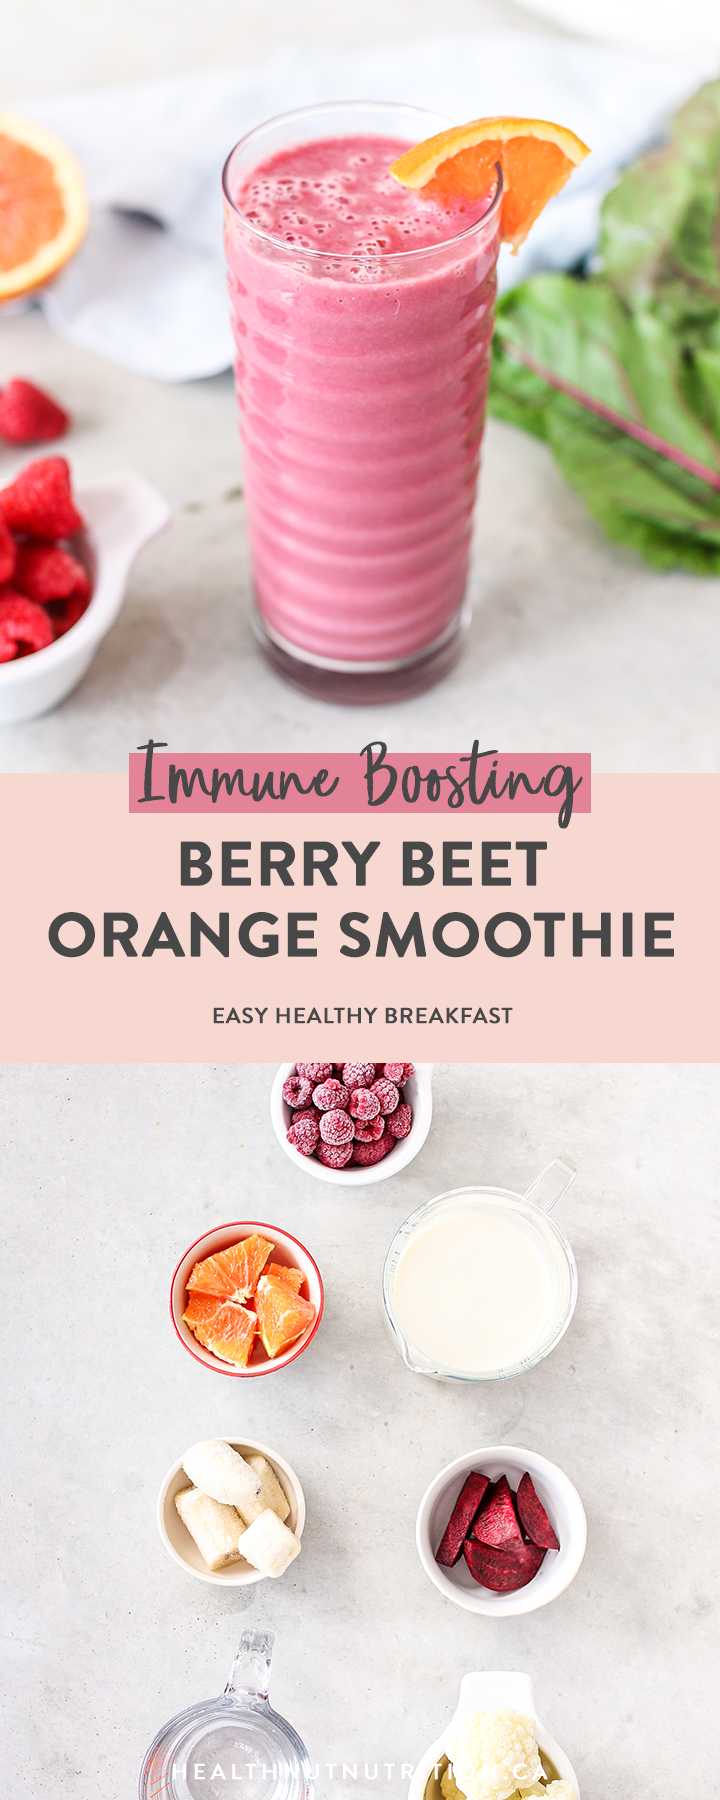 This pretty in pink vibrant beet, berry and orange smoothie is packed full of veggie and immune-boosting Vitamin C and antioxidants for a burst of nutrients to start your day!